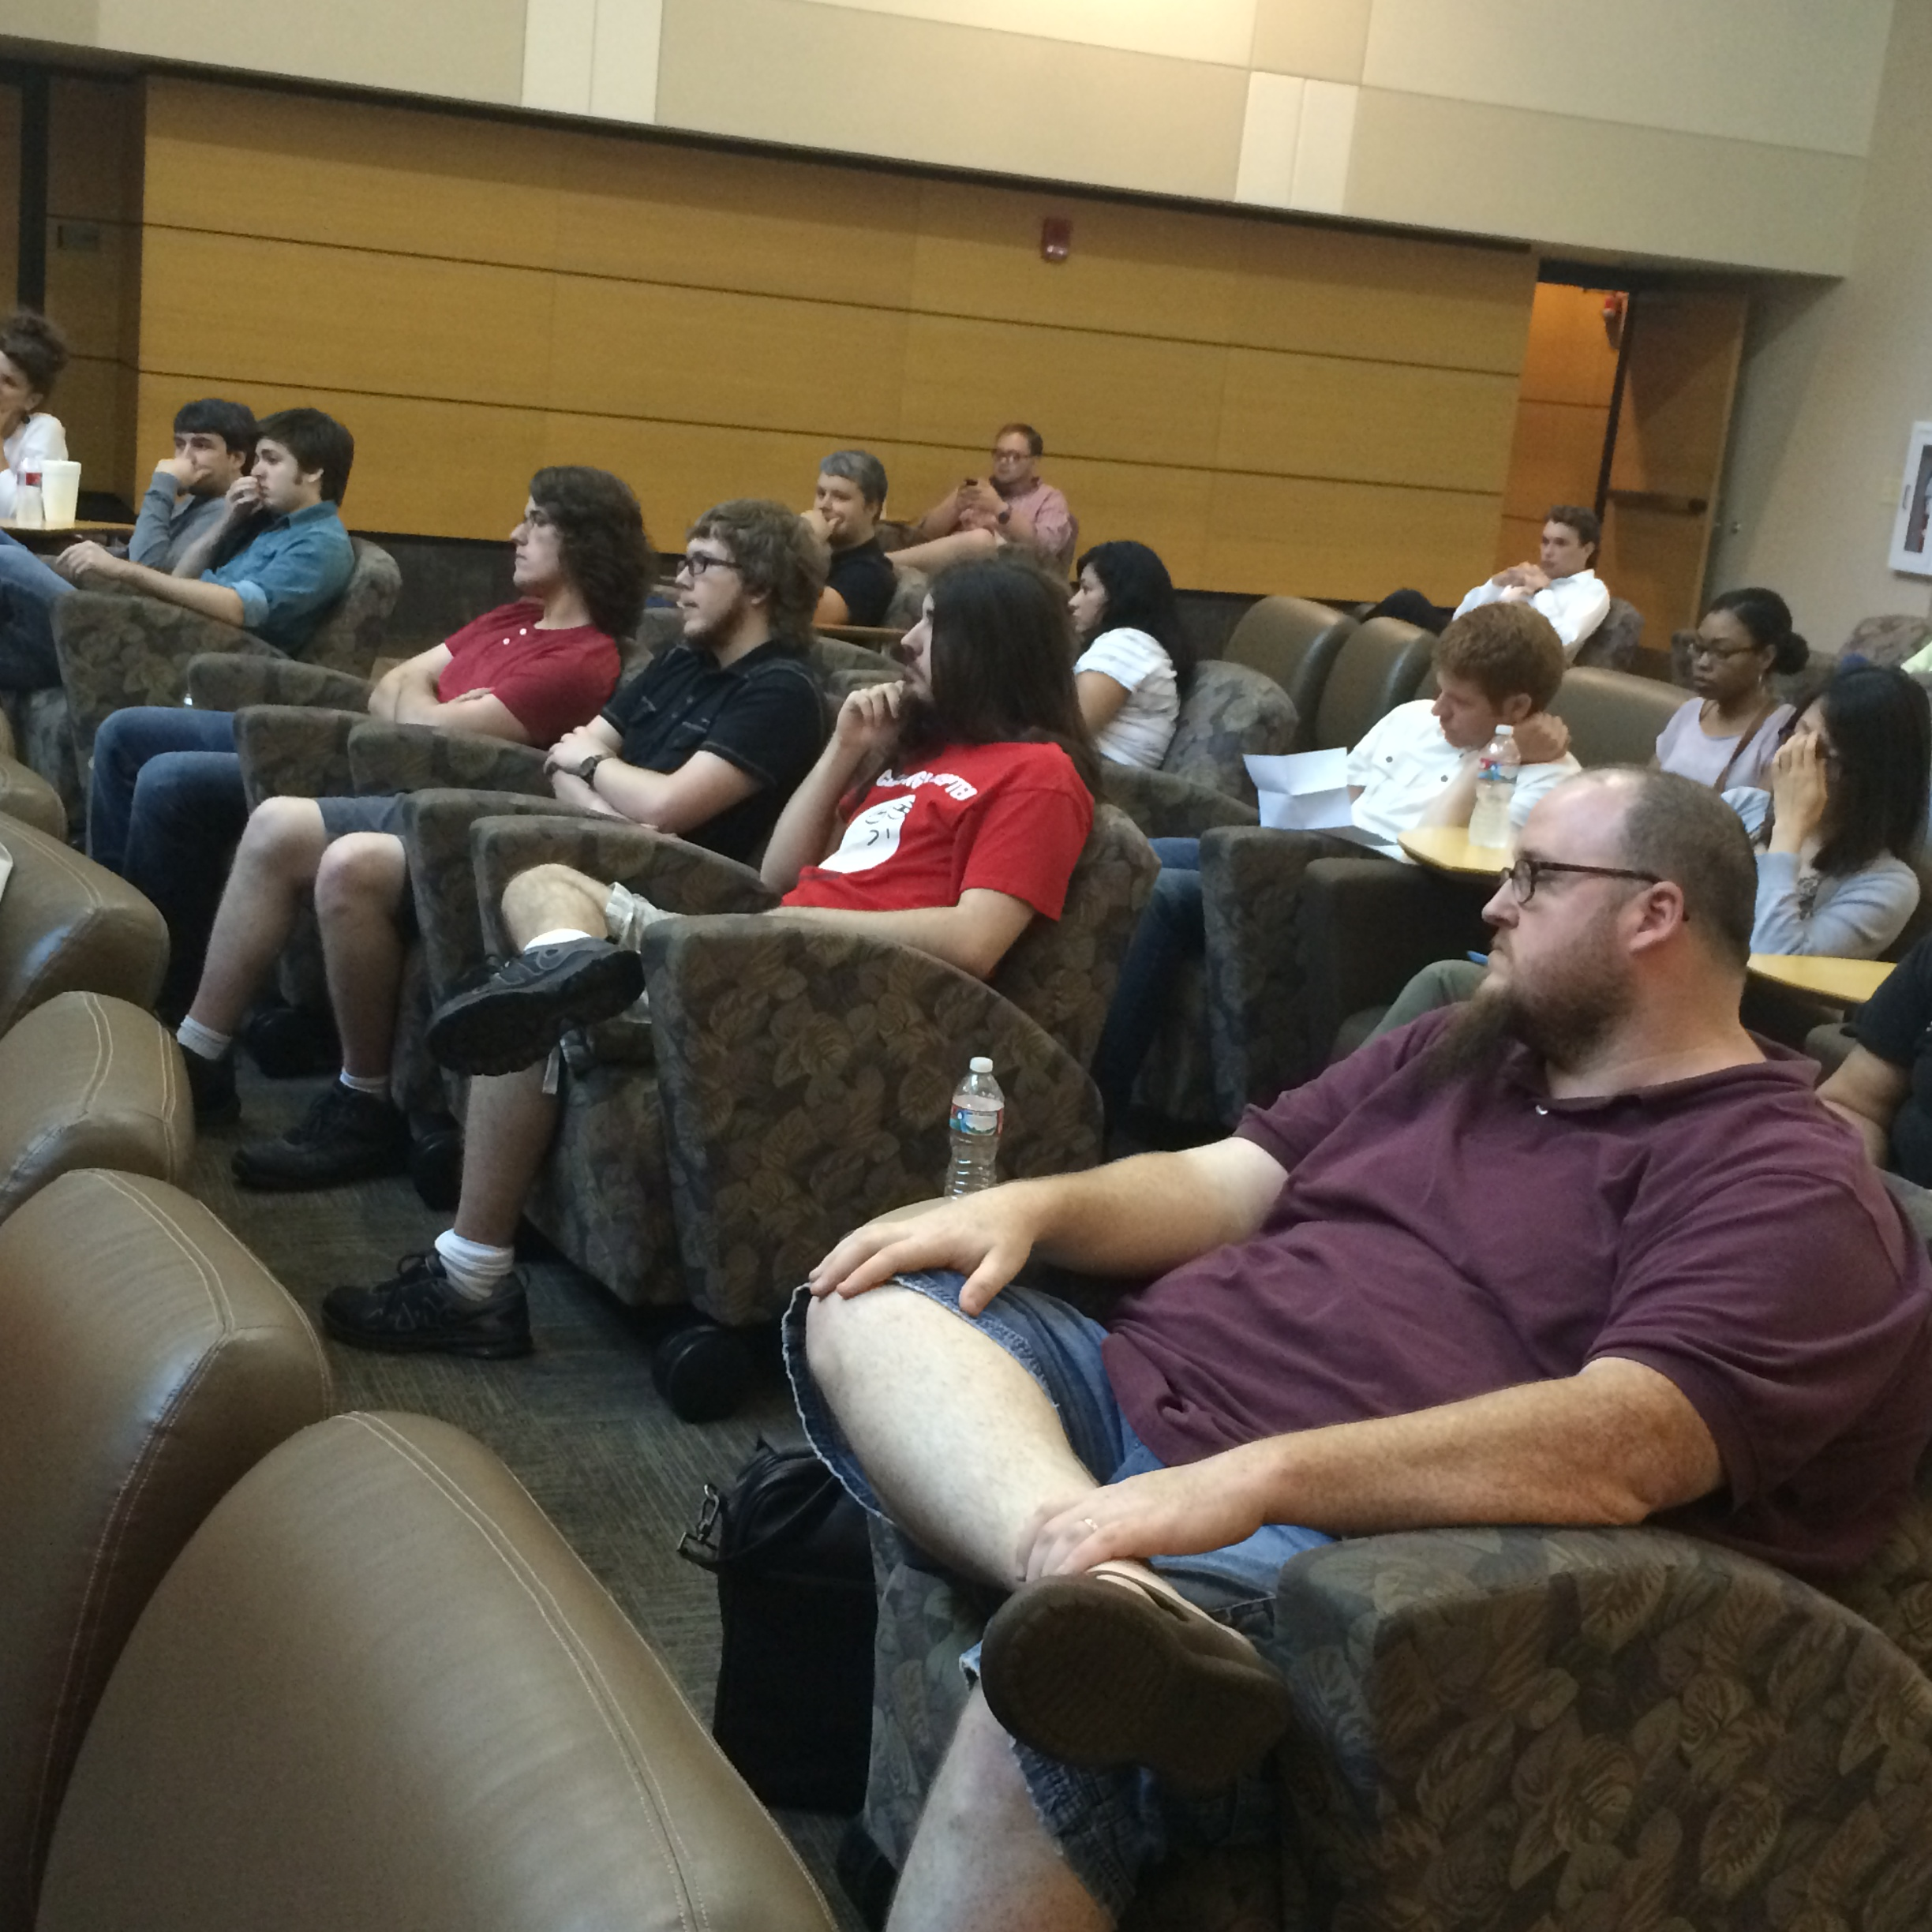 Participants at the opening session of a recent BarCamp event at UALR